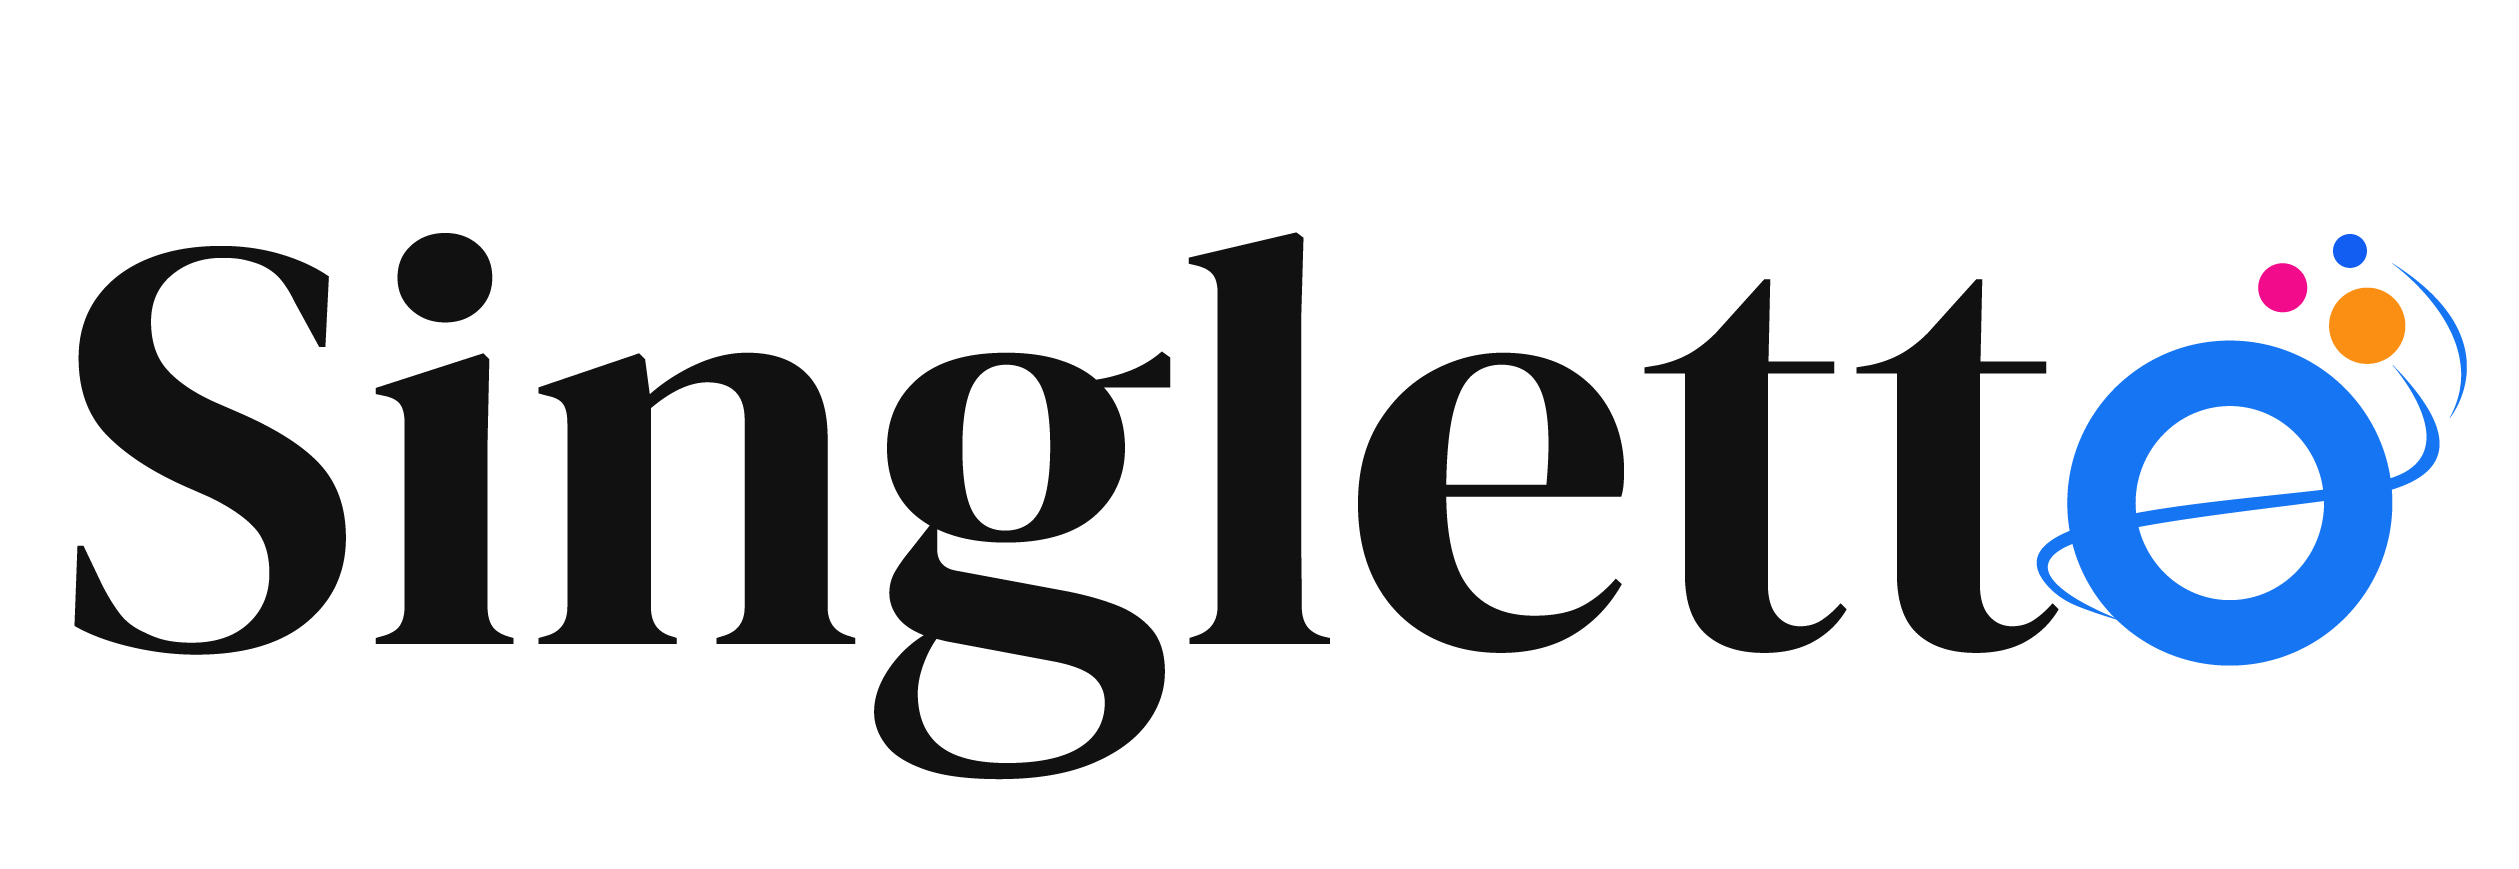 Stylized O with a line through the middle, three small dots at the top. Singletto logo.